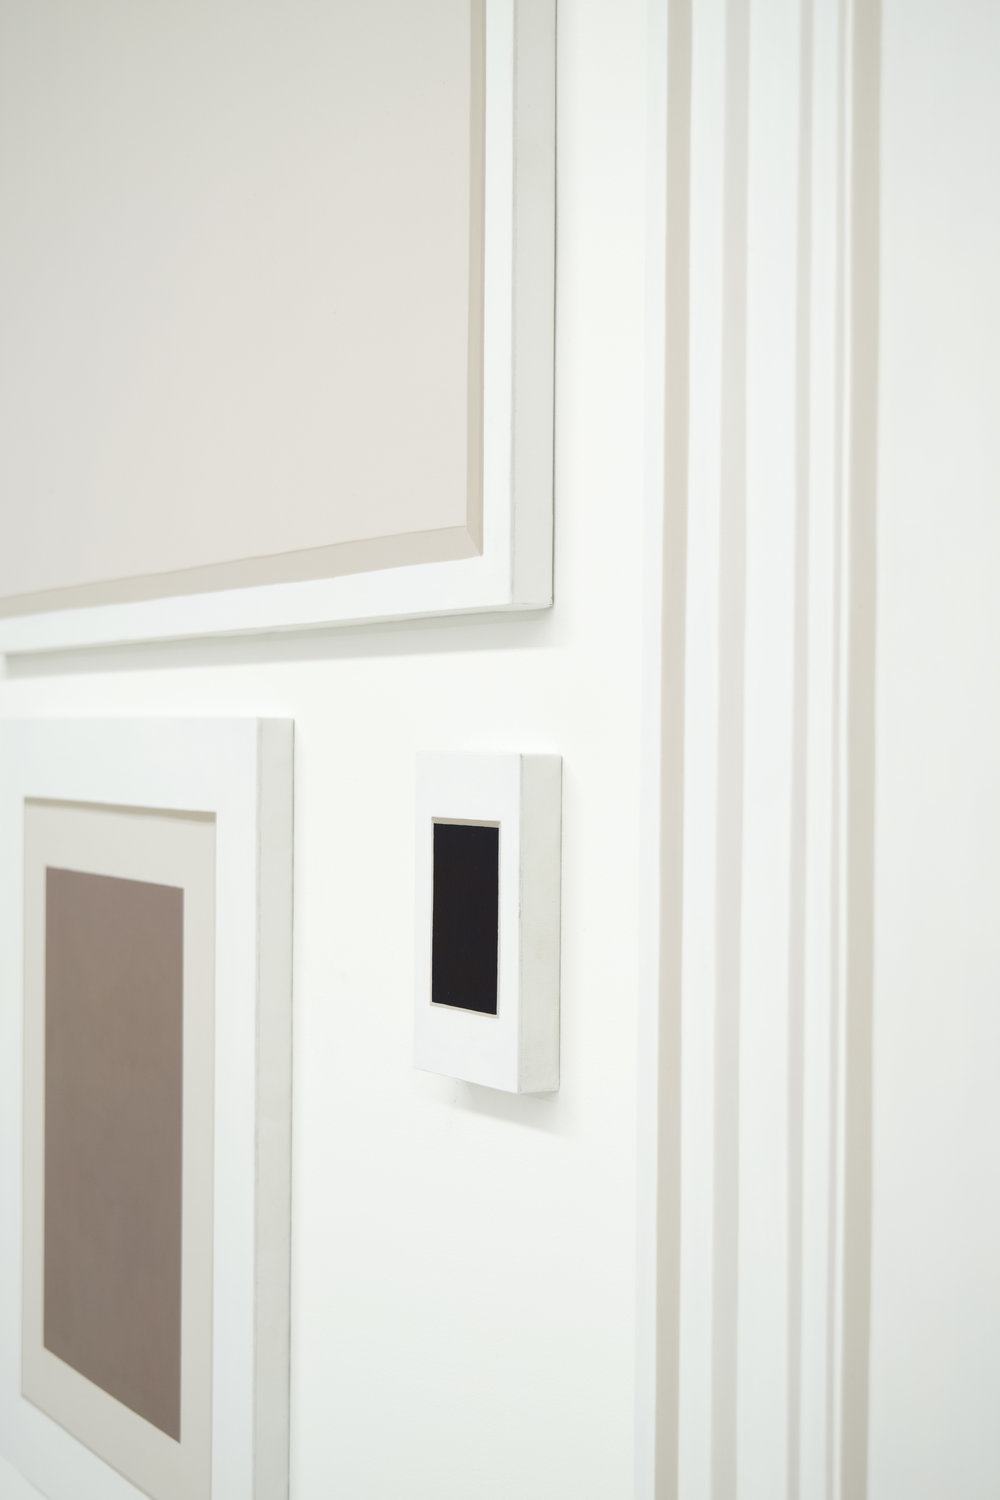 """Self Portrait No. 1,  (Detail),   2019, 54 ¾"""" h x 42 ¾"""" w x 3/4"""" d (overall). 5 paintings, various sizes. Wall: Benjamin Moore Super White."""